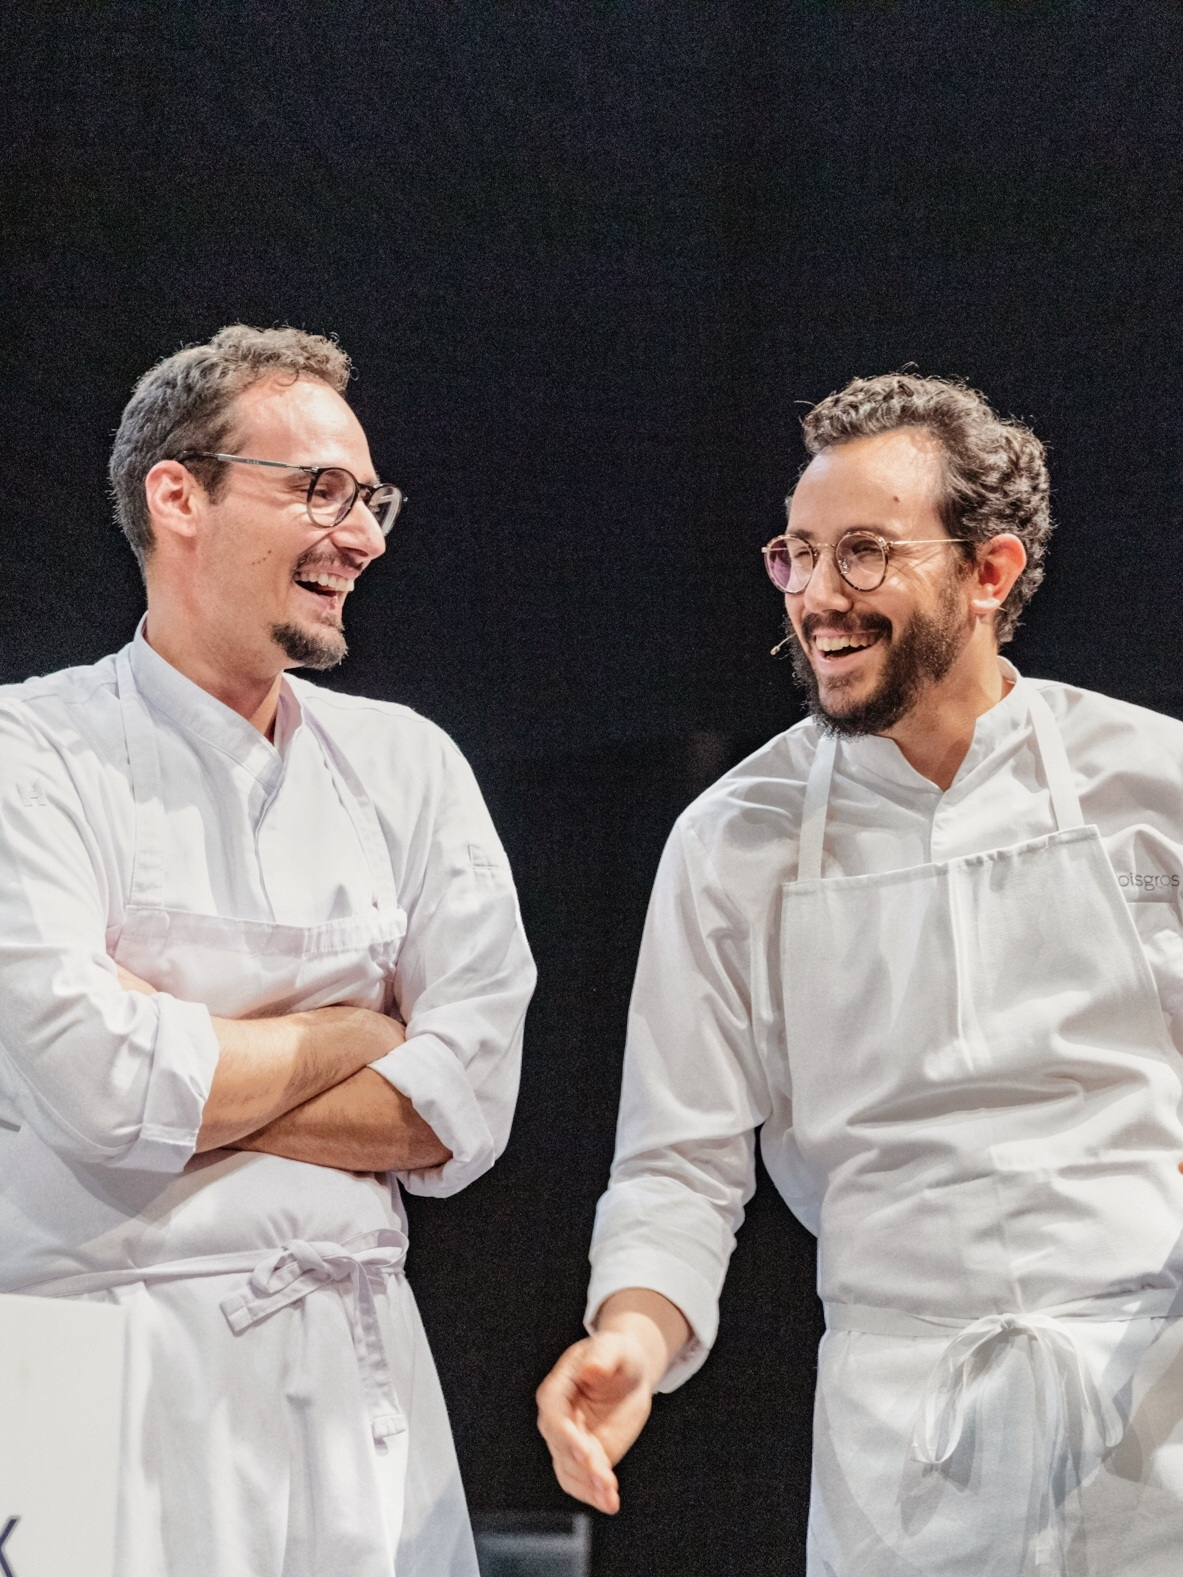 César Troisgros with friend and former colleague Giuseppe D'Errico, on stage of ChefAlps 2019 Image Credit: ChefAlps, Nadine Kägi